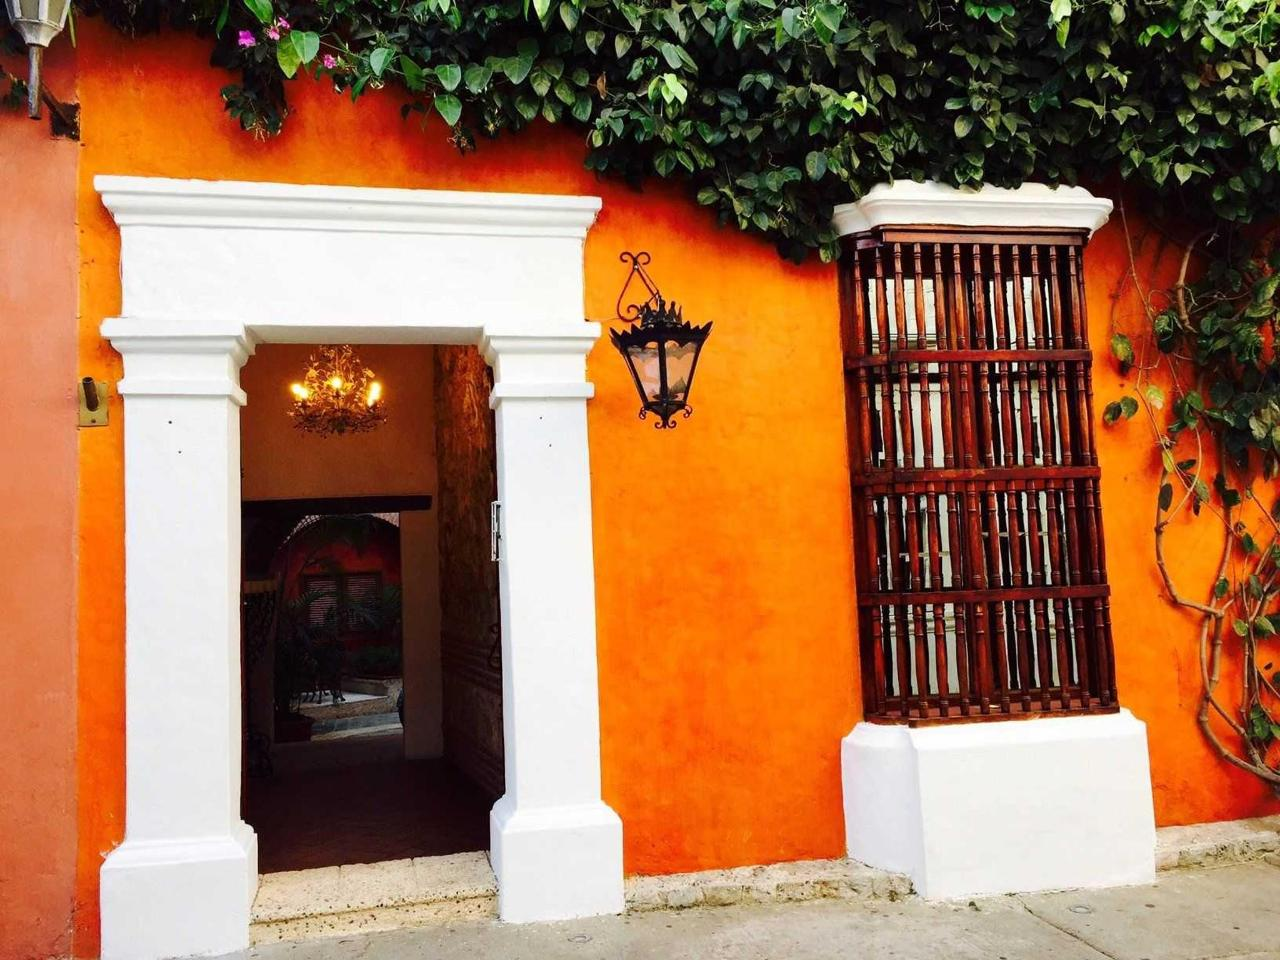 In Cartagena, we will be staying at the beautiful Casa de los Reyes Hotel